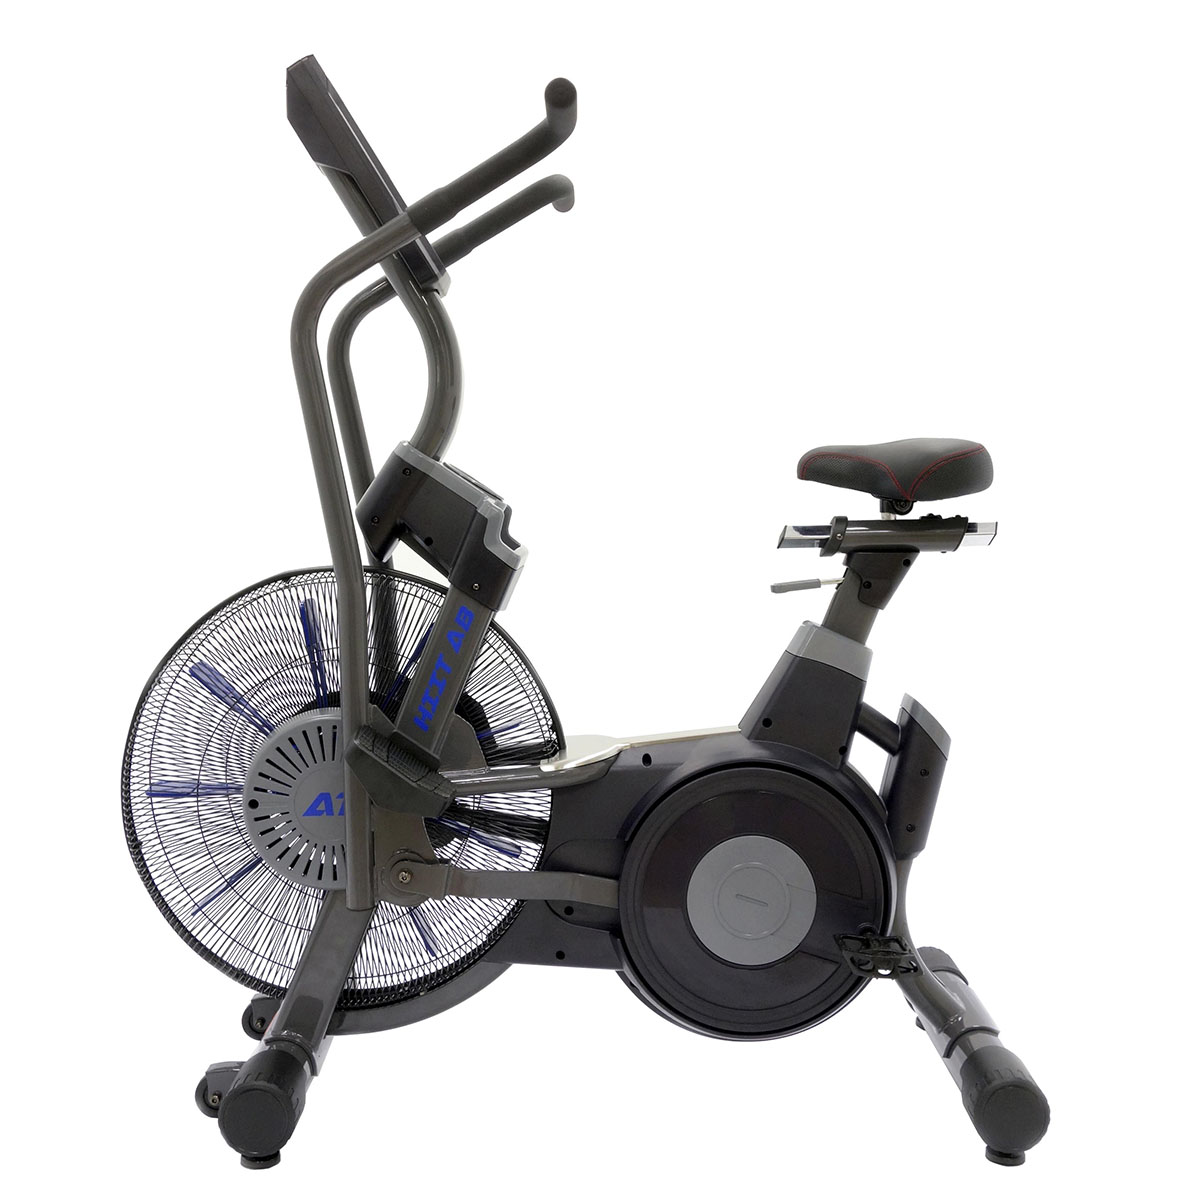 hci-airtek-hiit-air-bike-stationary-bike.jpg